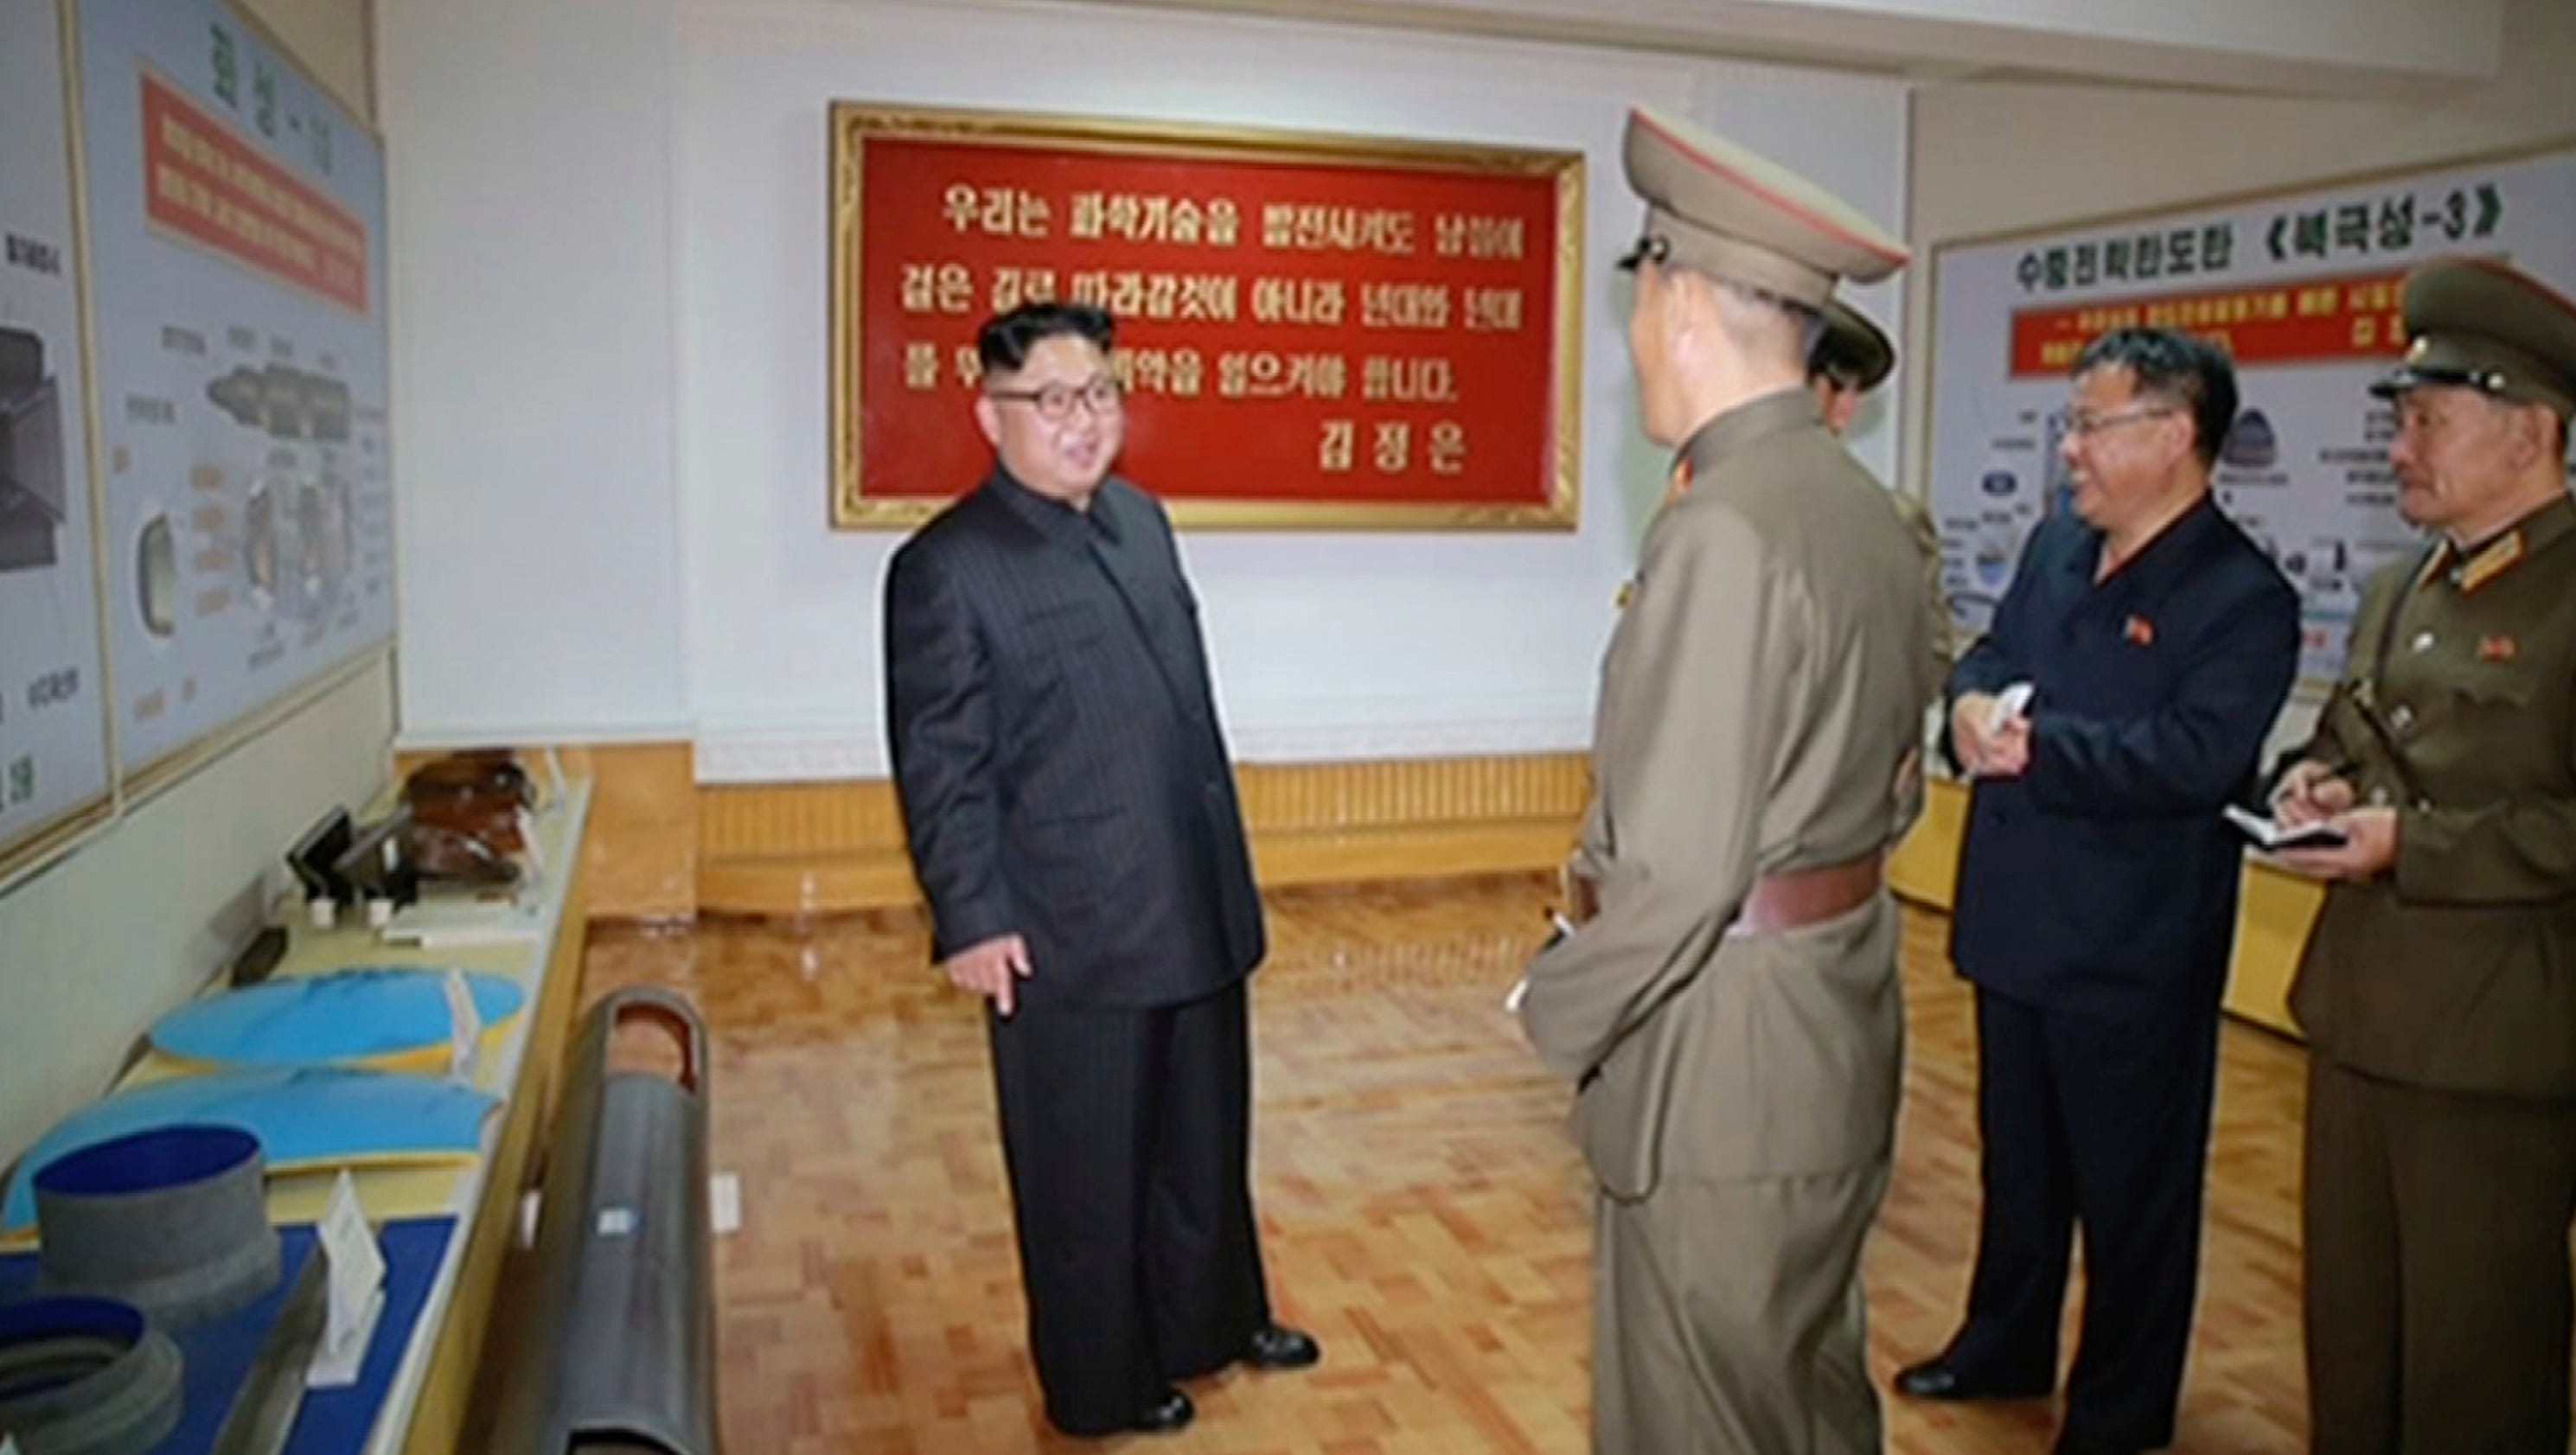 New North Korea photos may show designs for more advanced missiles